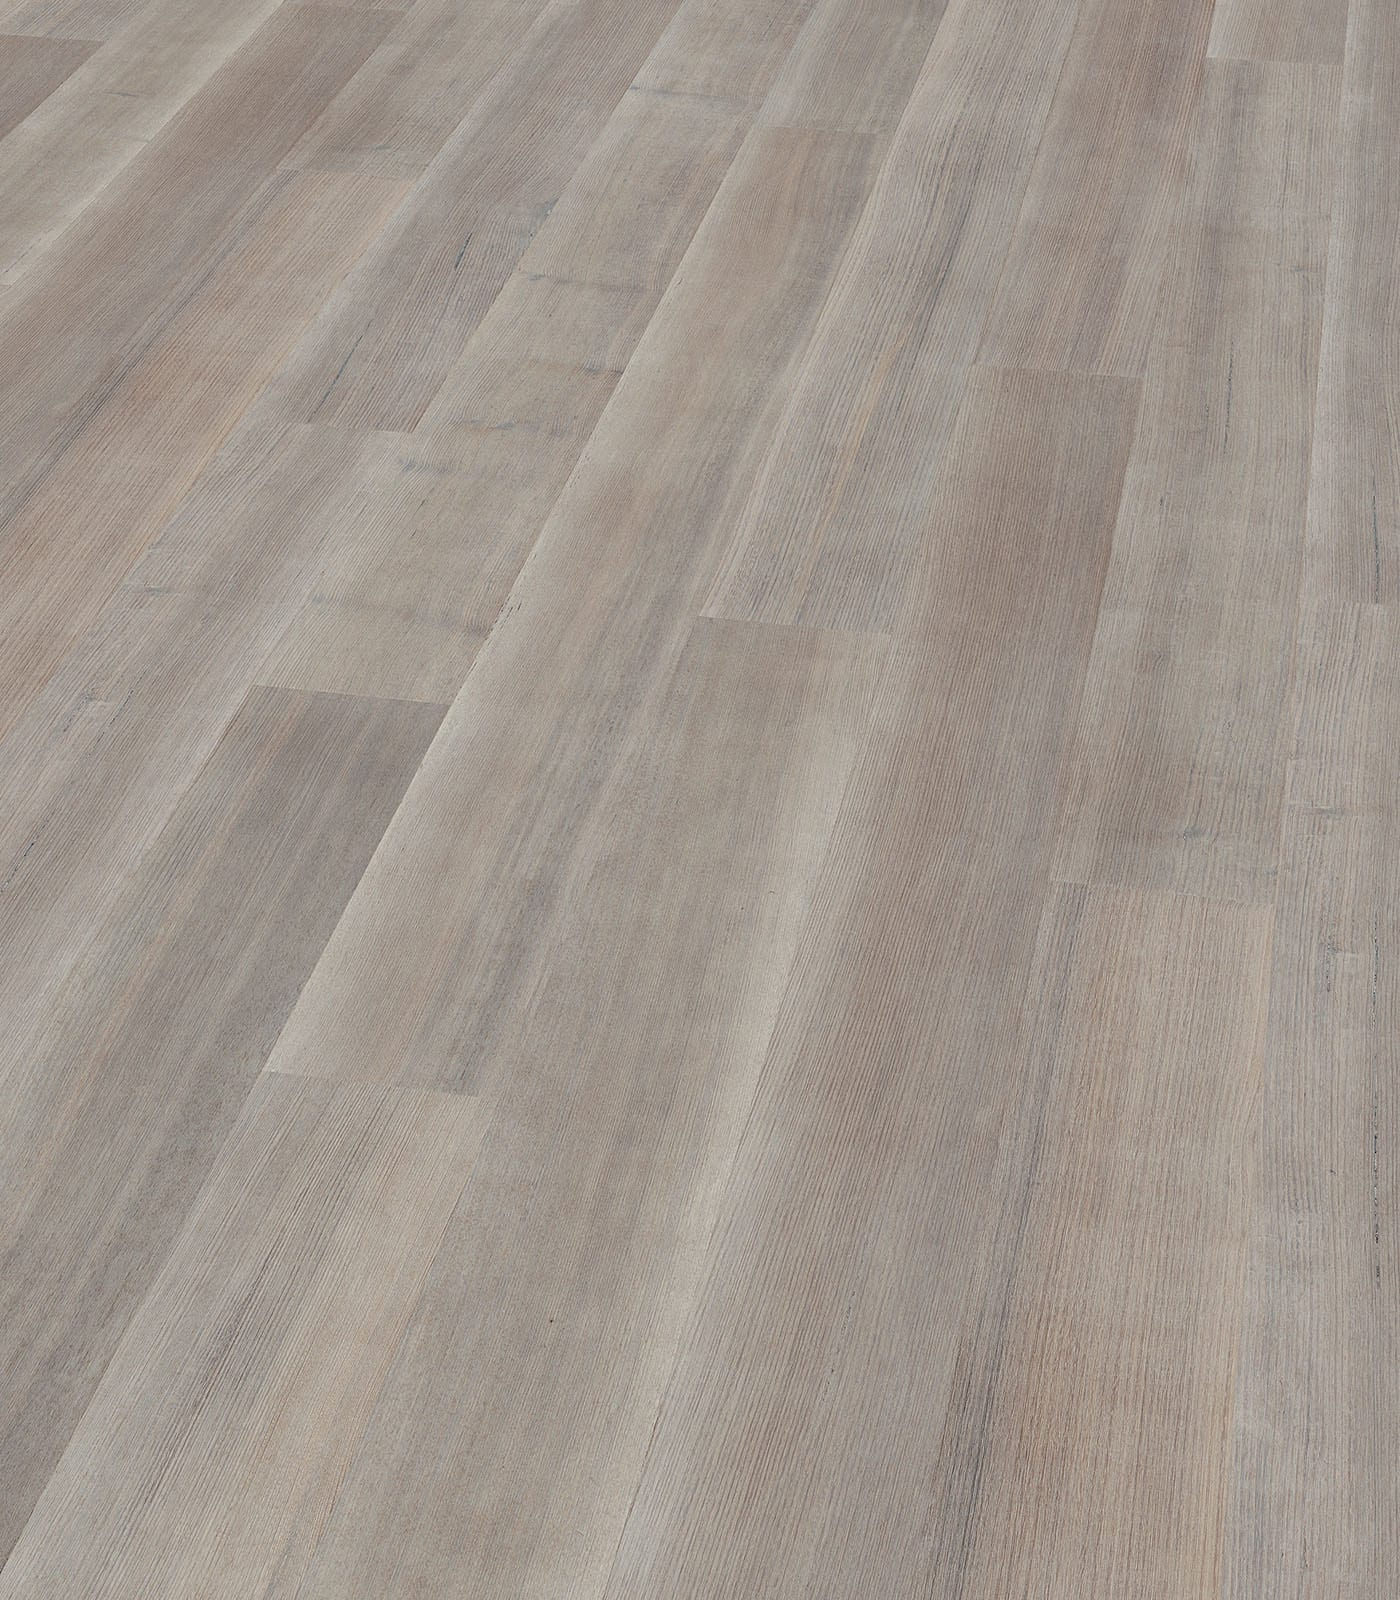 Adelaide-After Oak Collection-Tasmanain Oak floors-angle